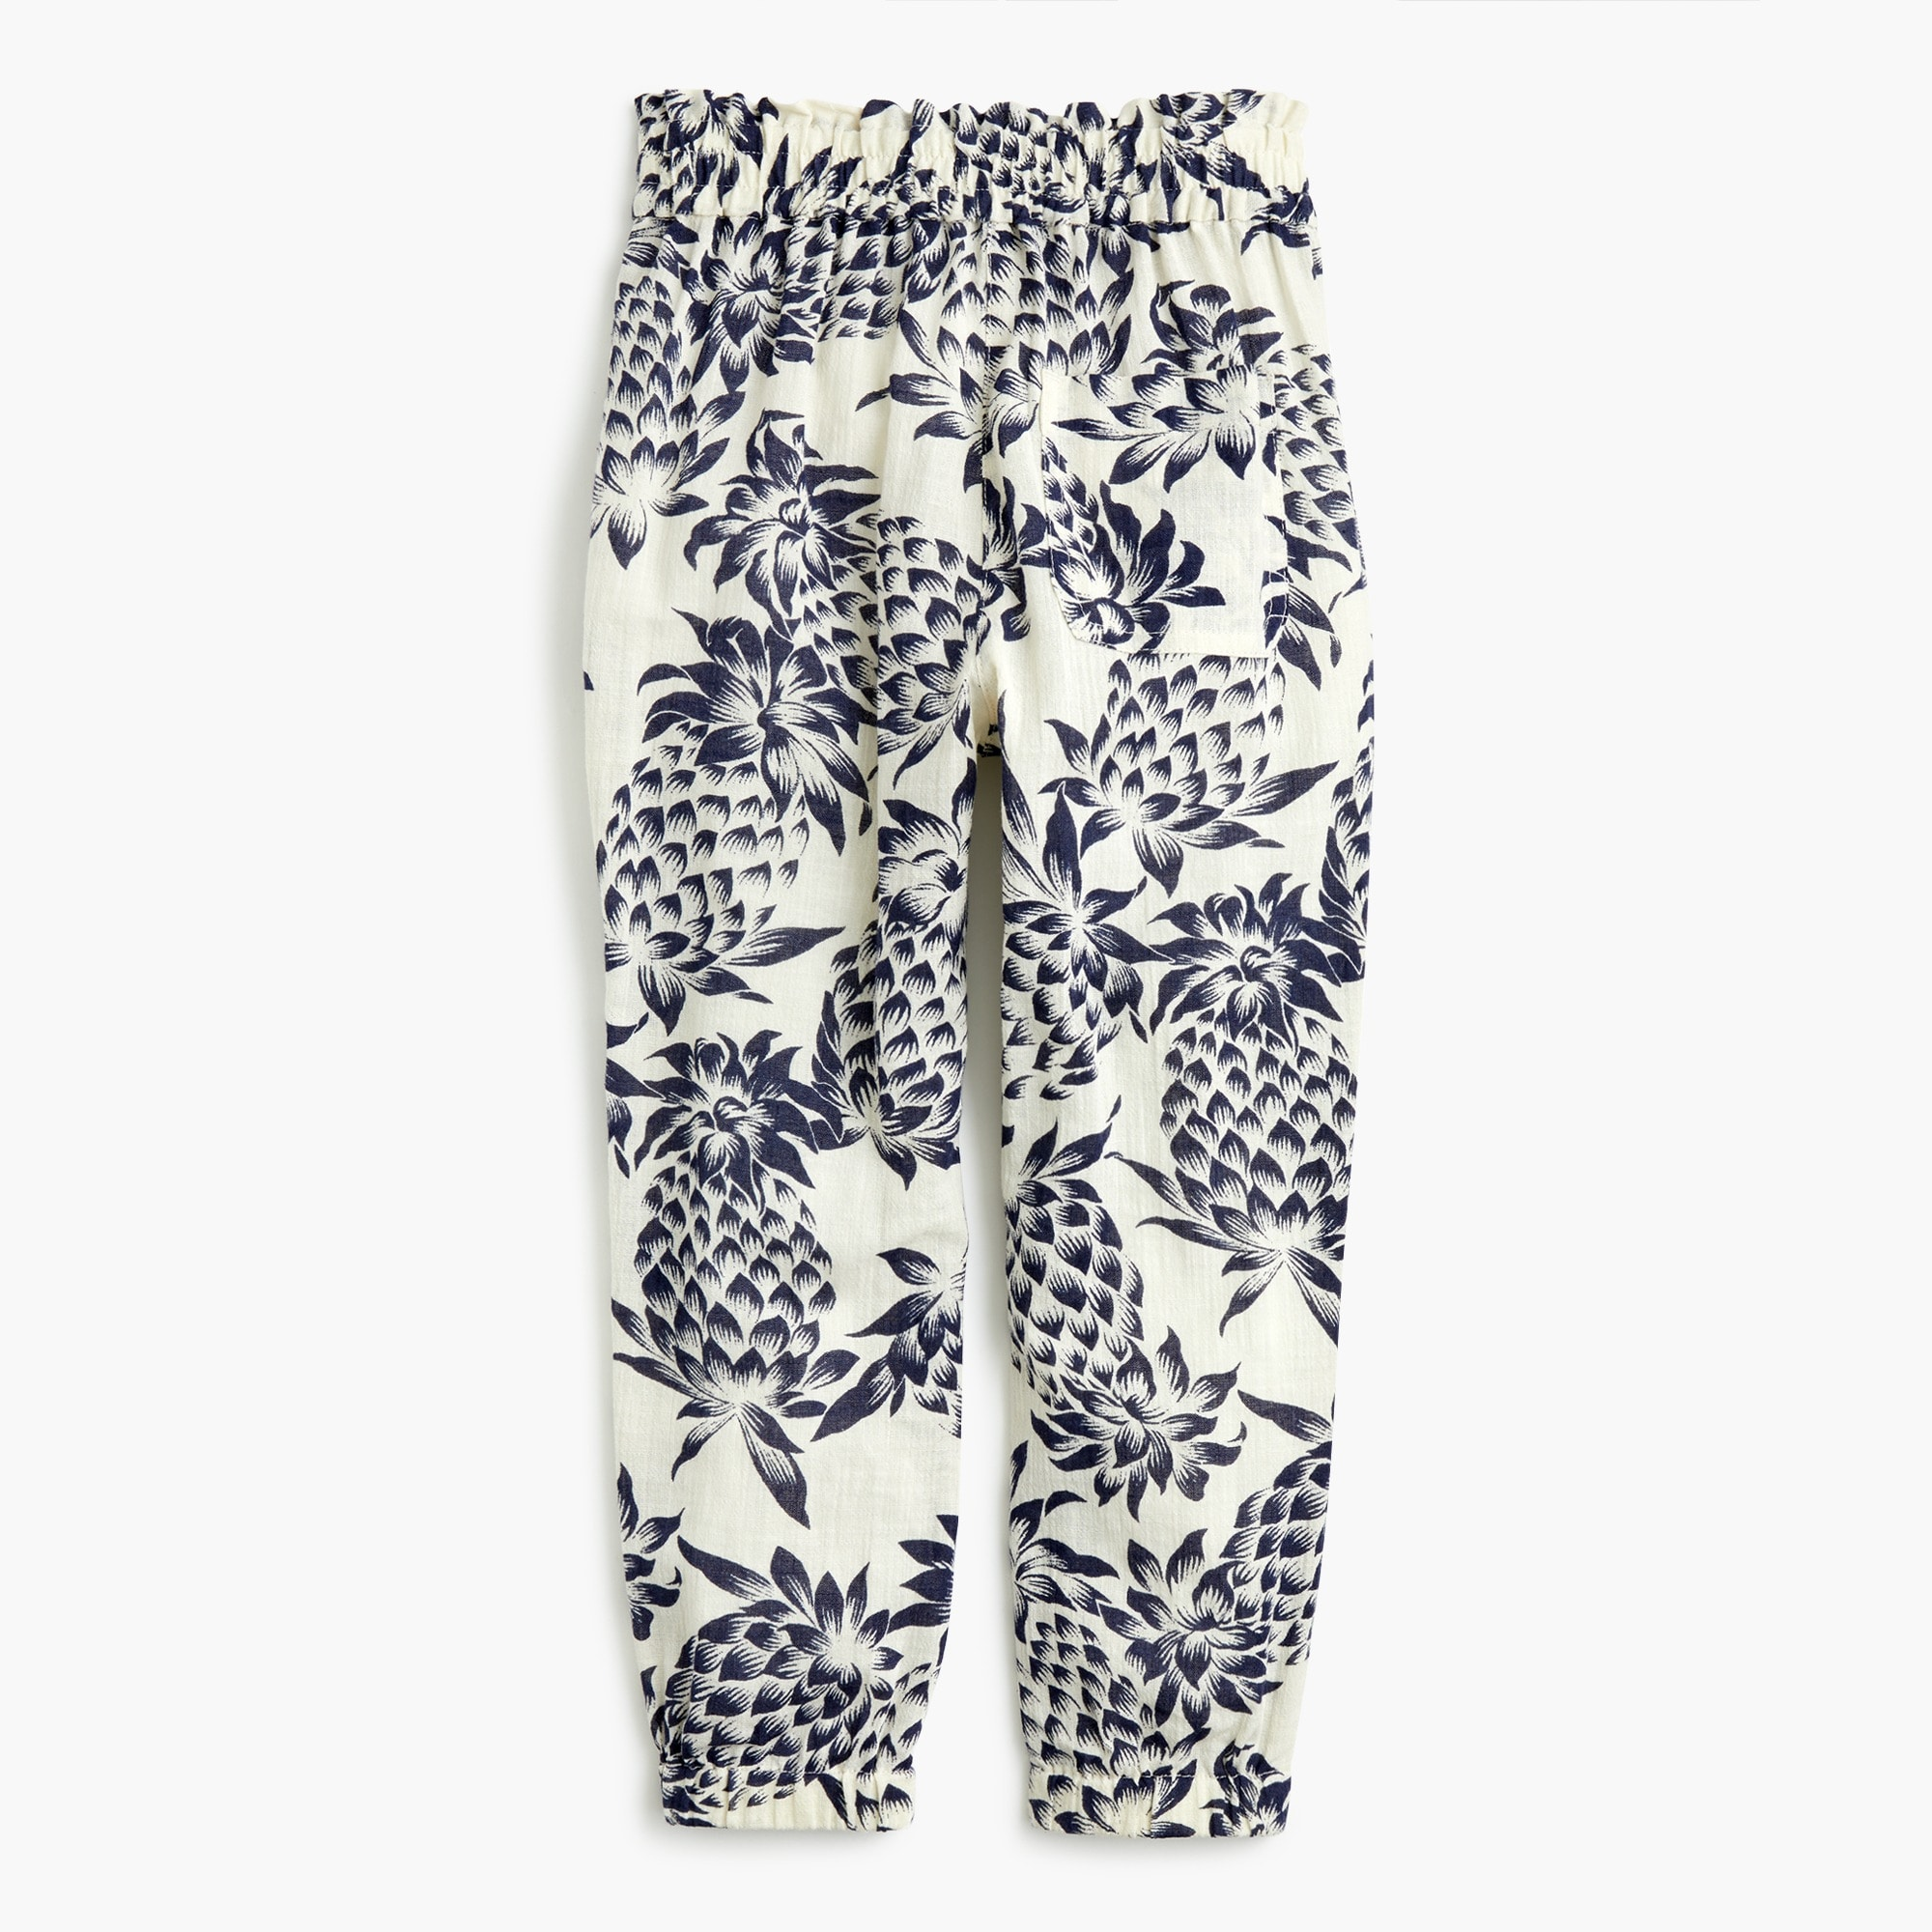 Image 2 for Girls' drawstring pant in pineapple print